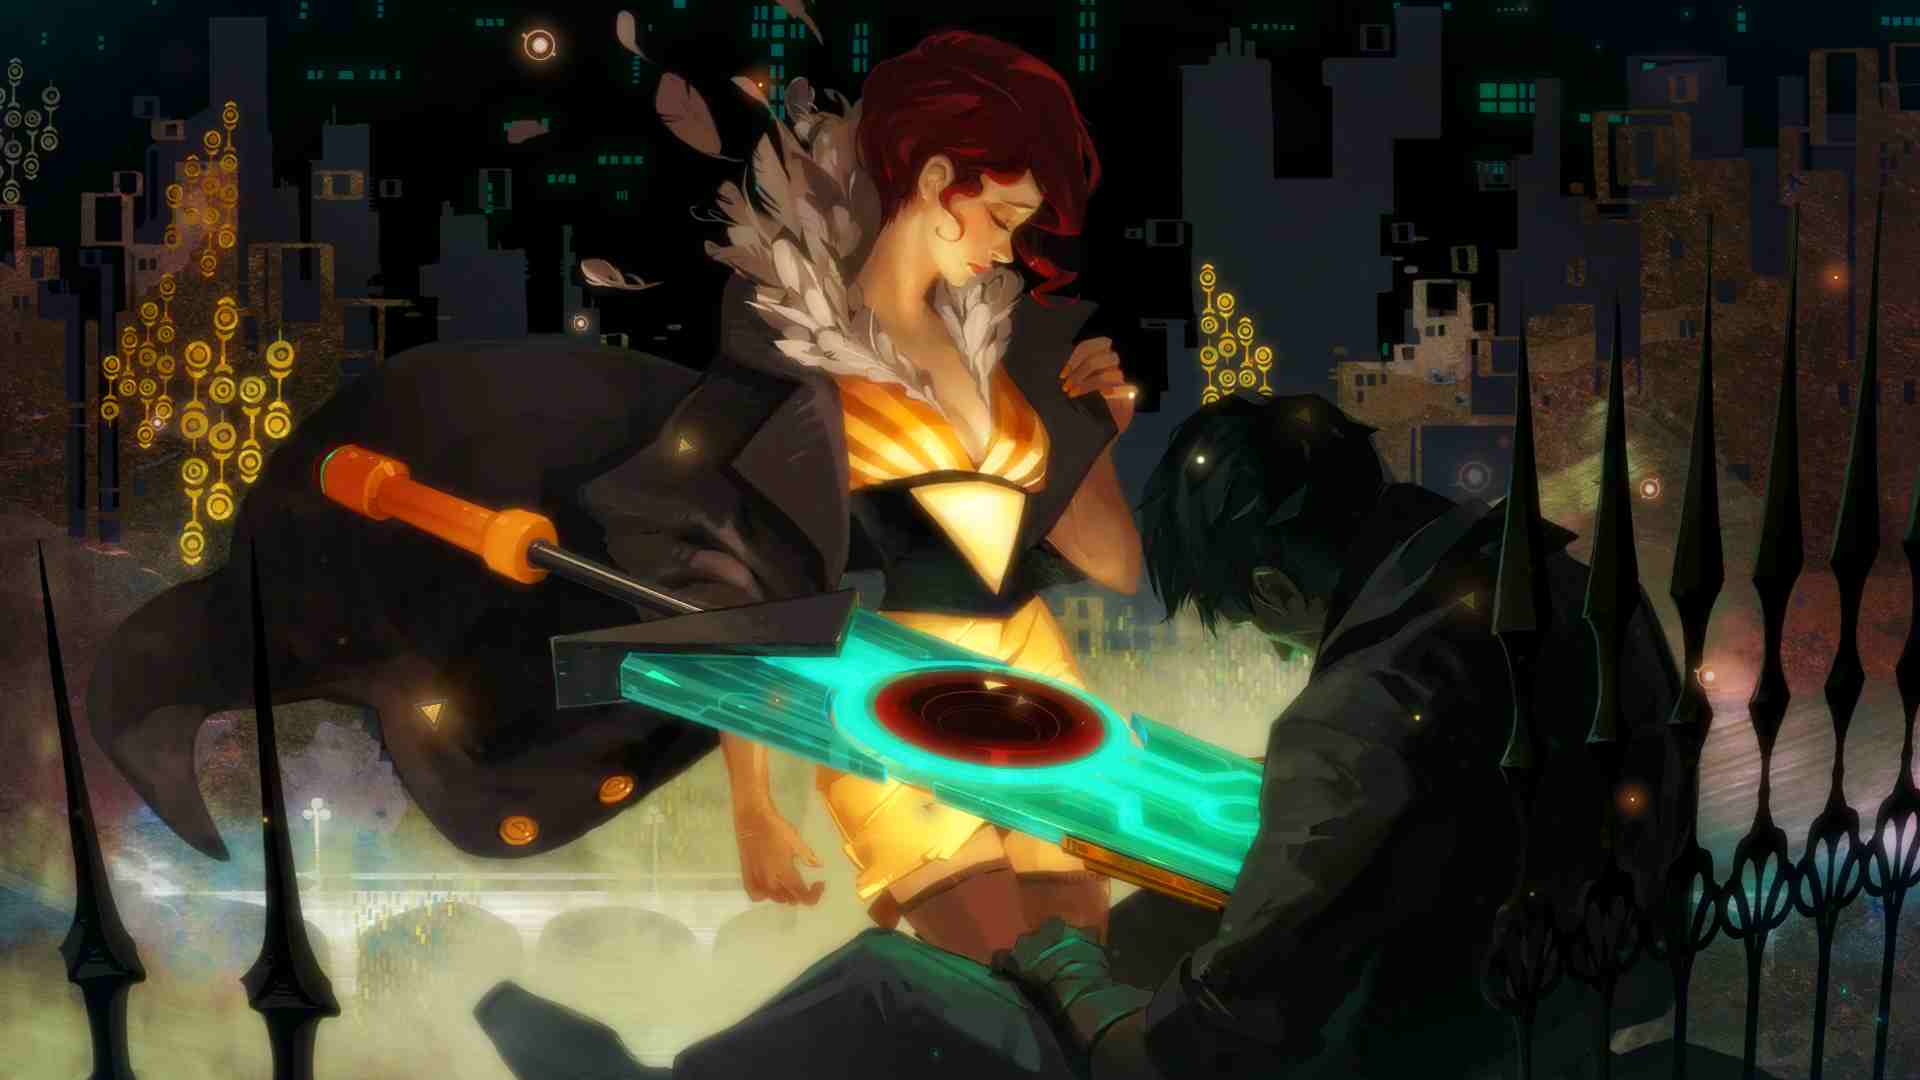 Transistor game art, opening act